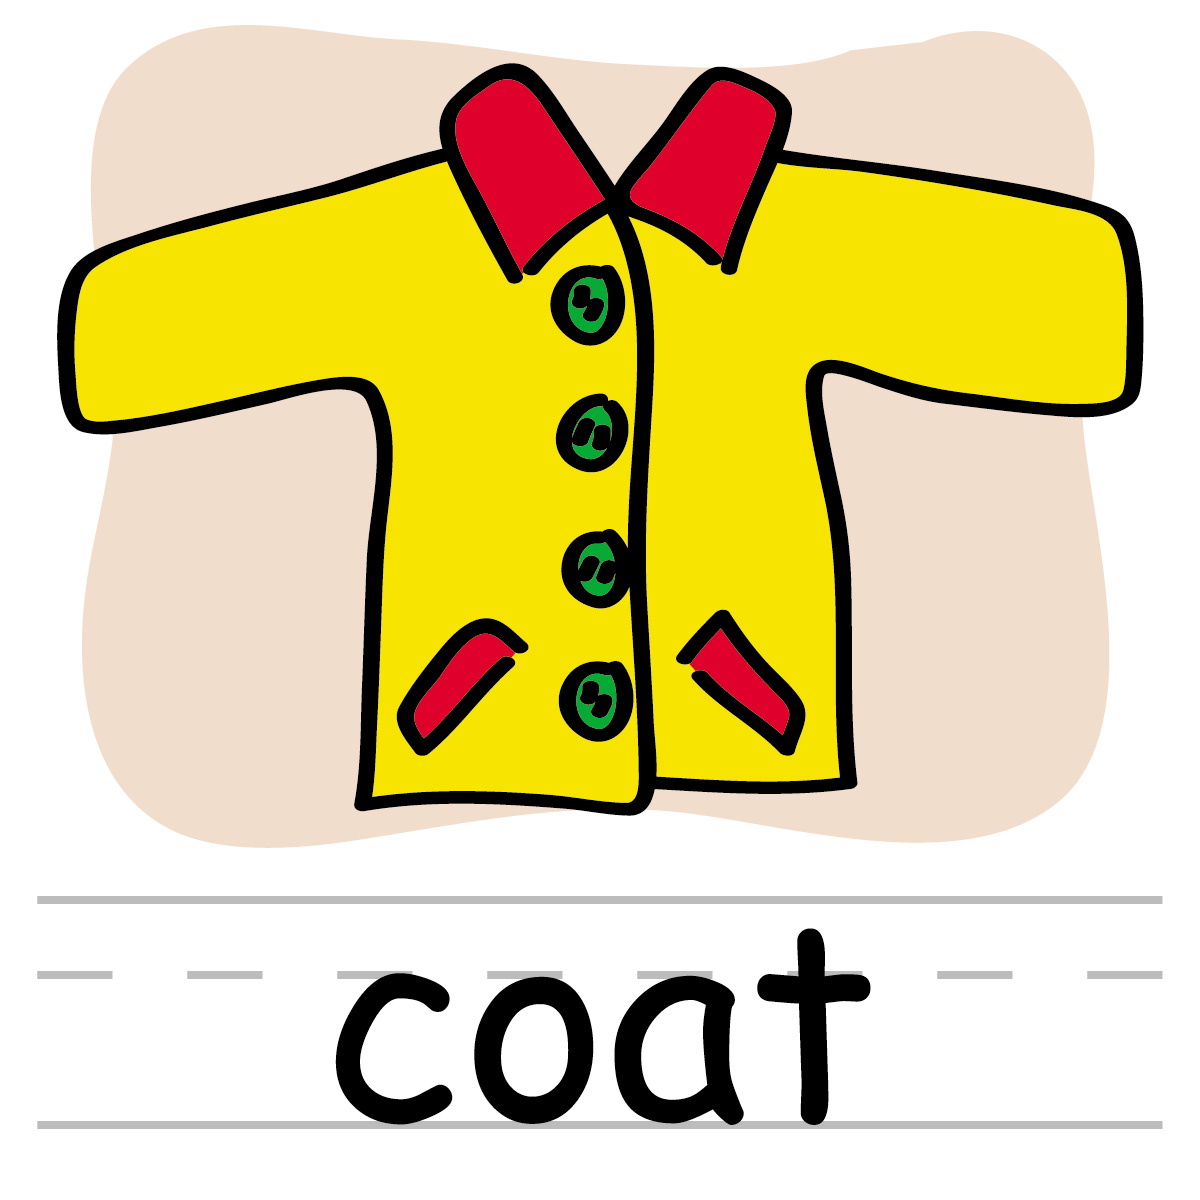 Coat clipart coat shoe. Coats shoes